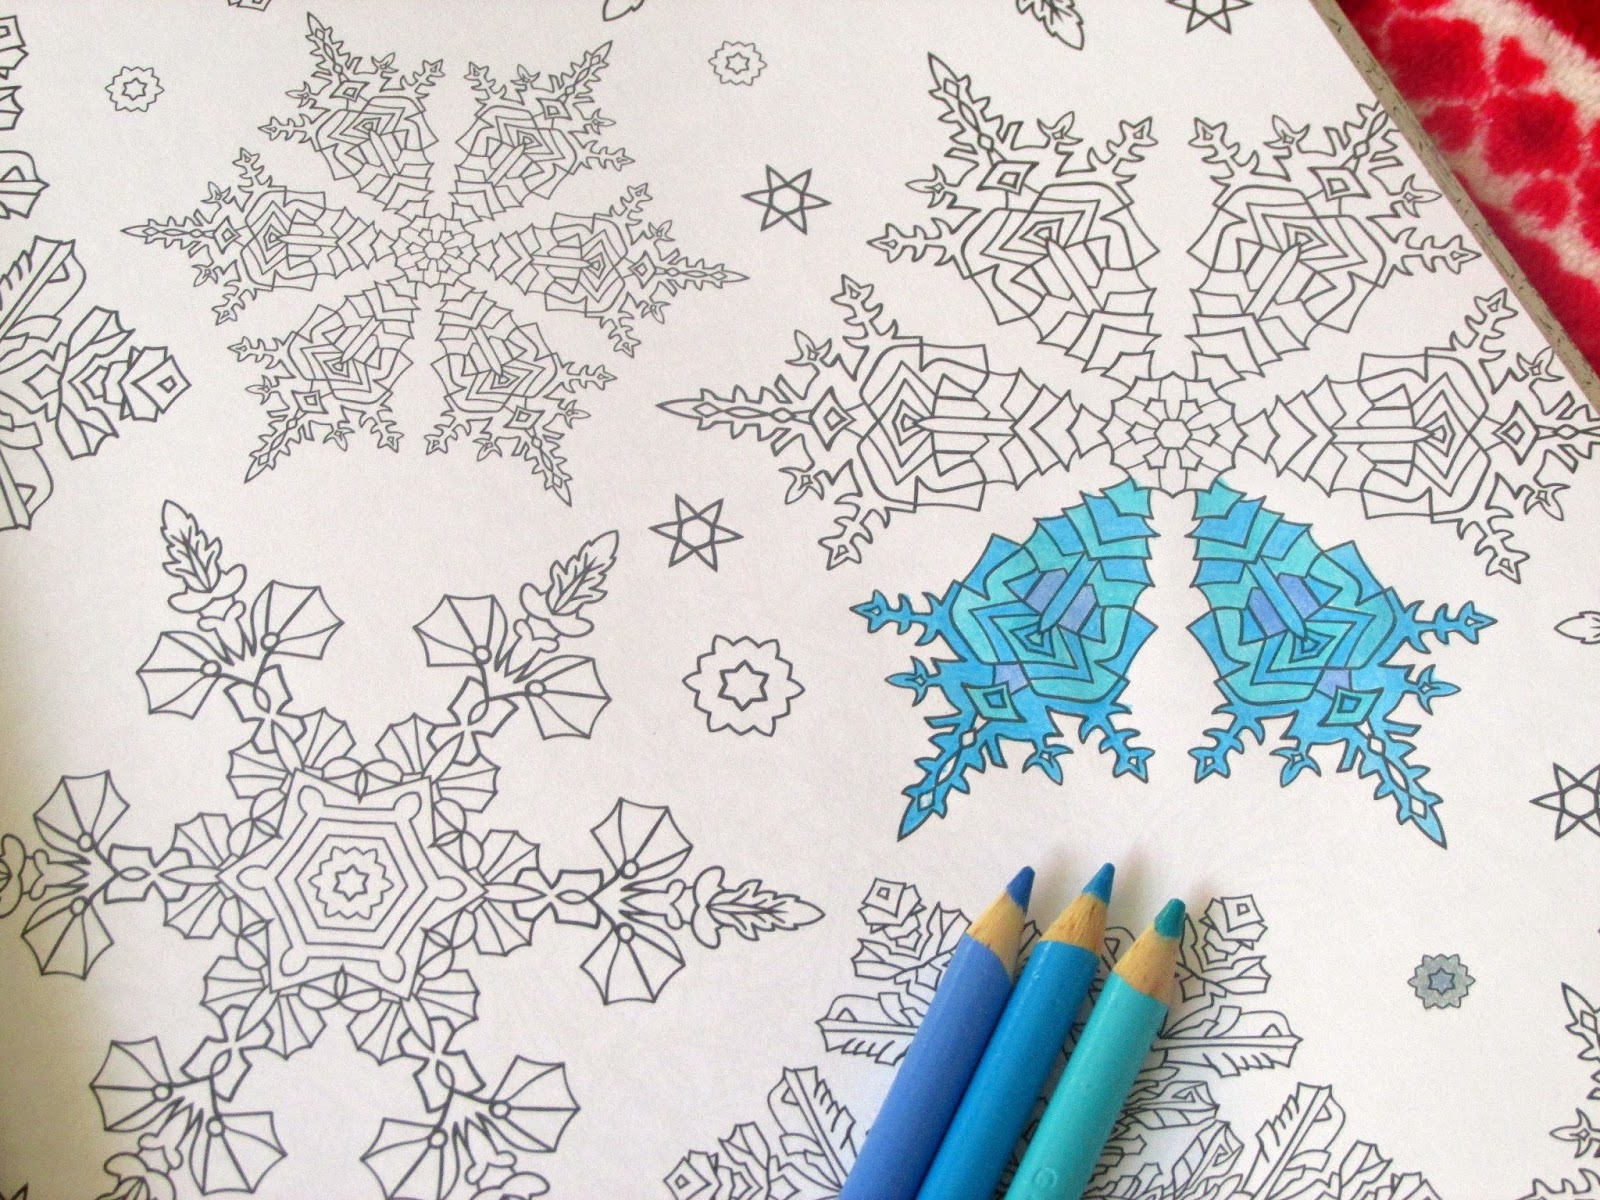 If Youre Looking For An Easy Way To De Stress This Christmas Id Recommend You Get Yourself A Copy Of Zen Colourings Winter Wonderland Colouring Book And